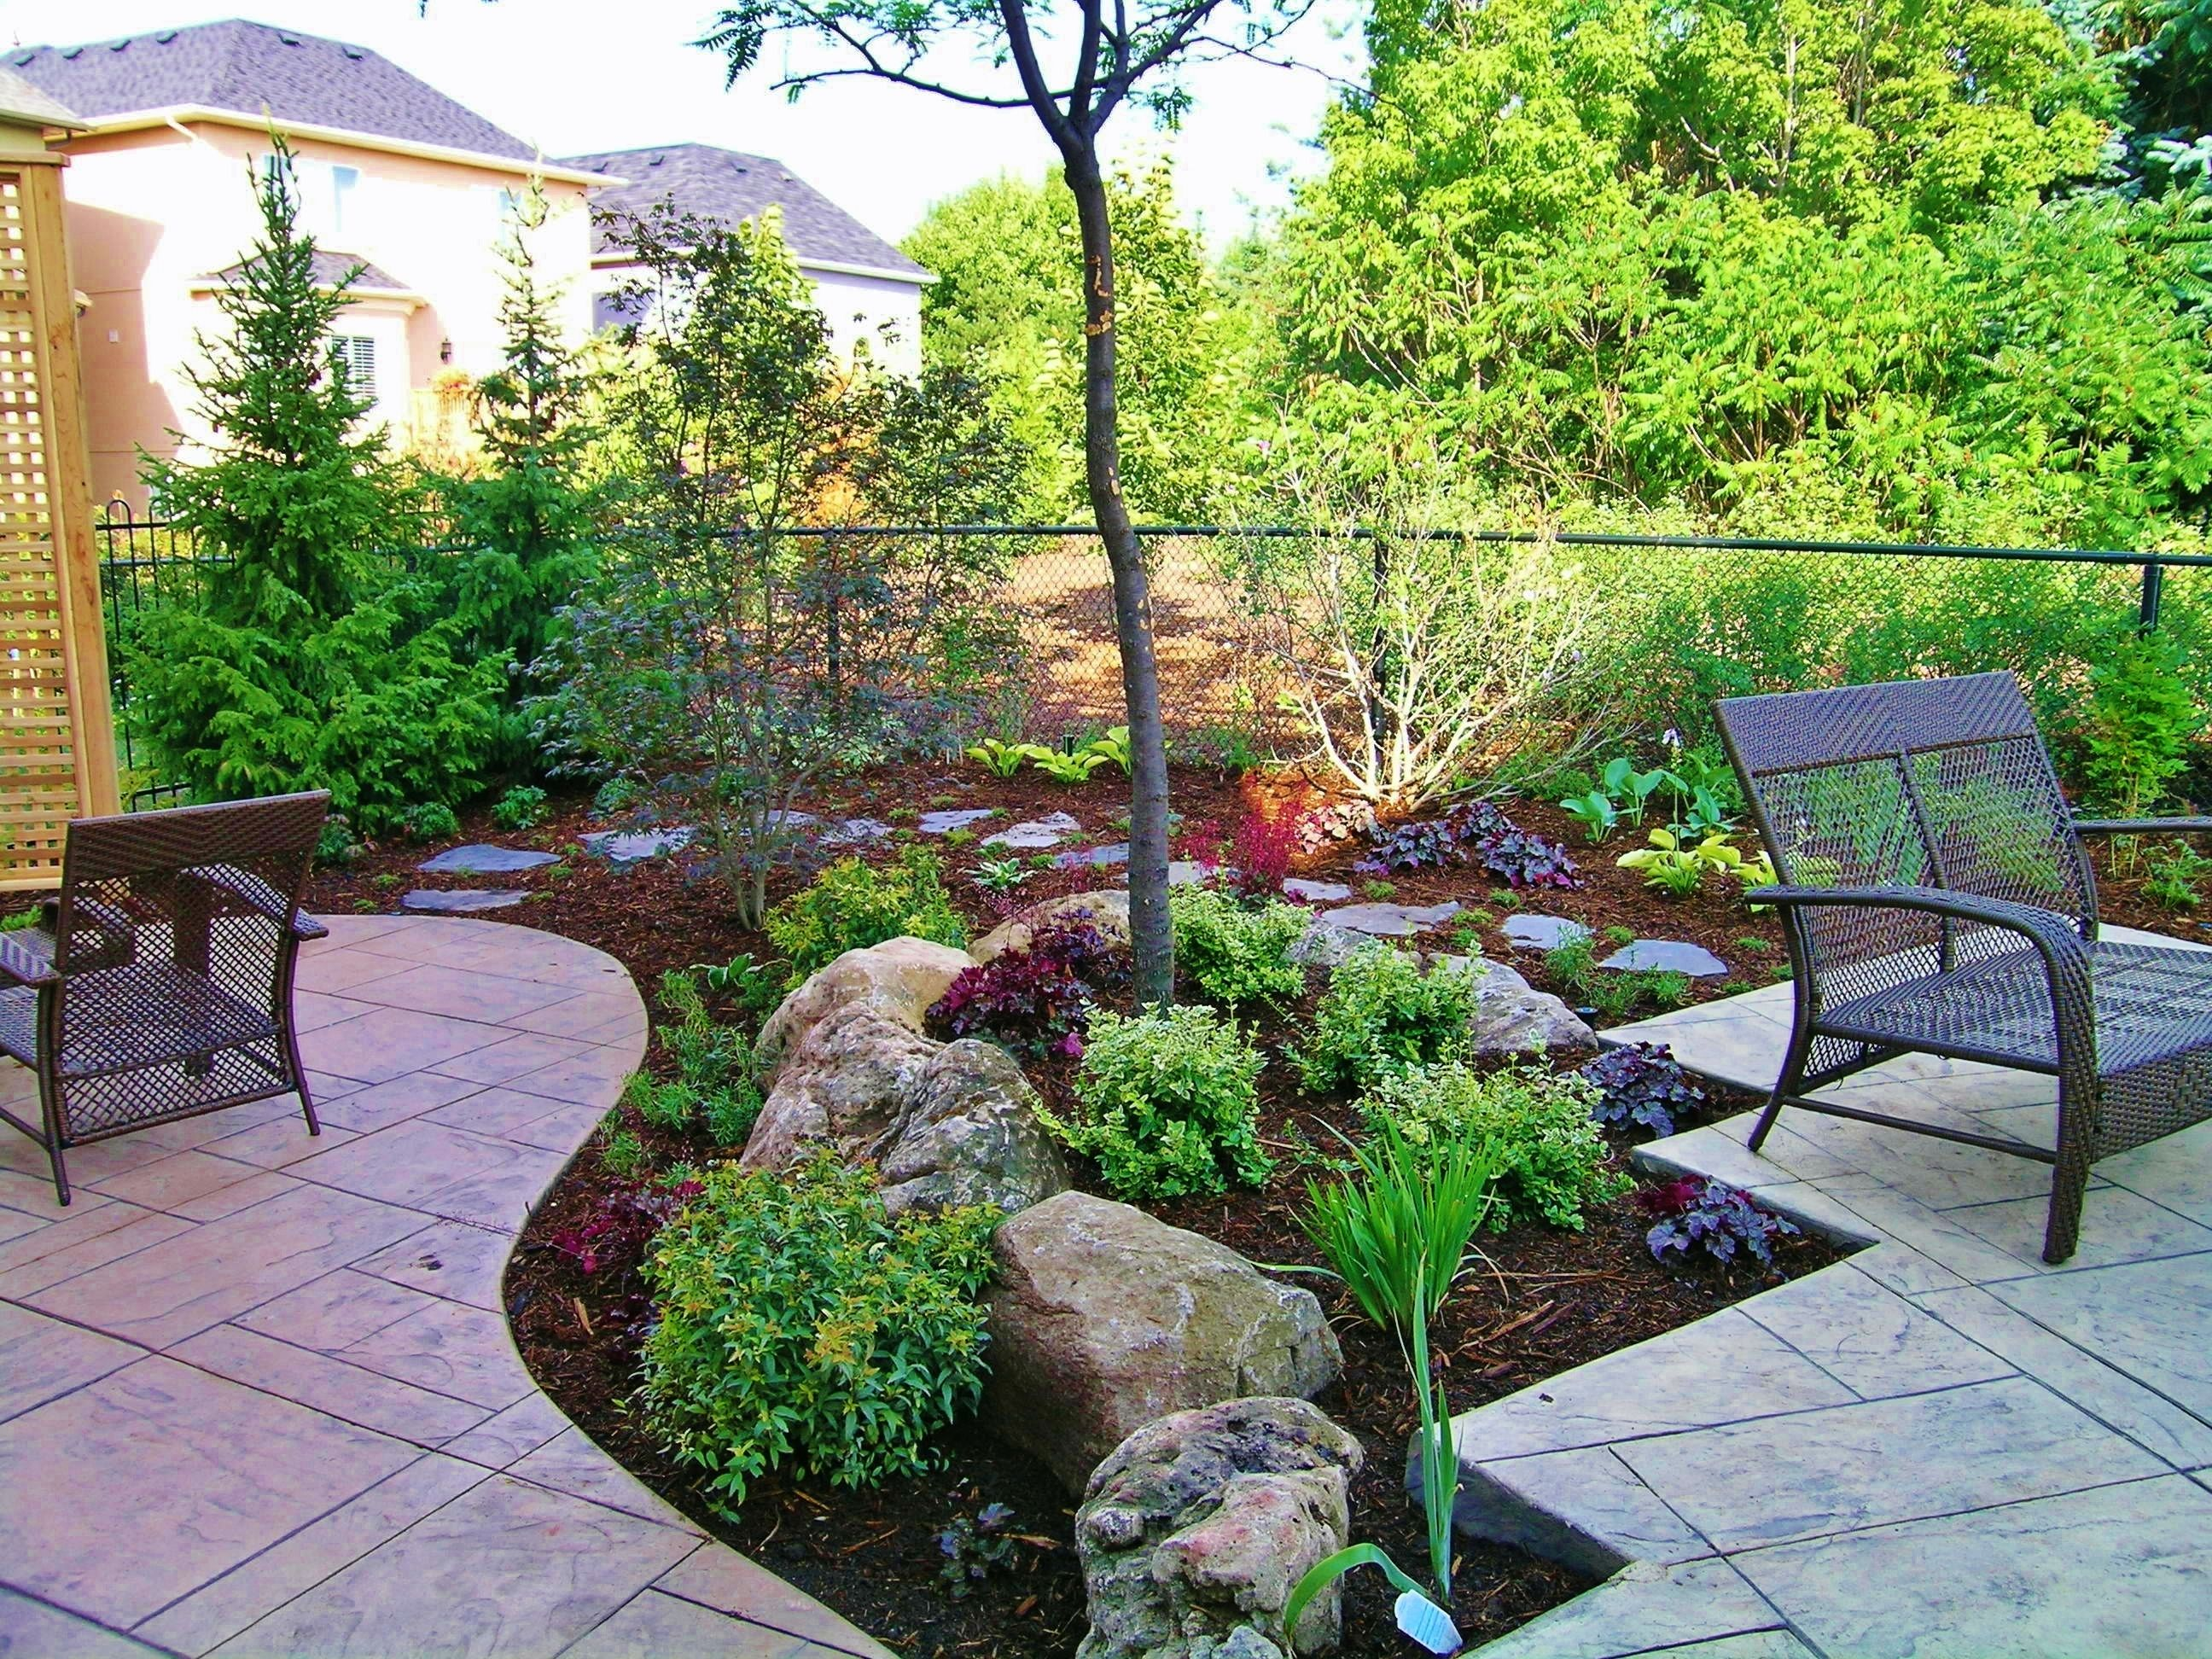 backyard without grass ideas backyardbackyard designslandscaping - Landscape Design Ideas For Small Backyards